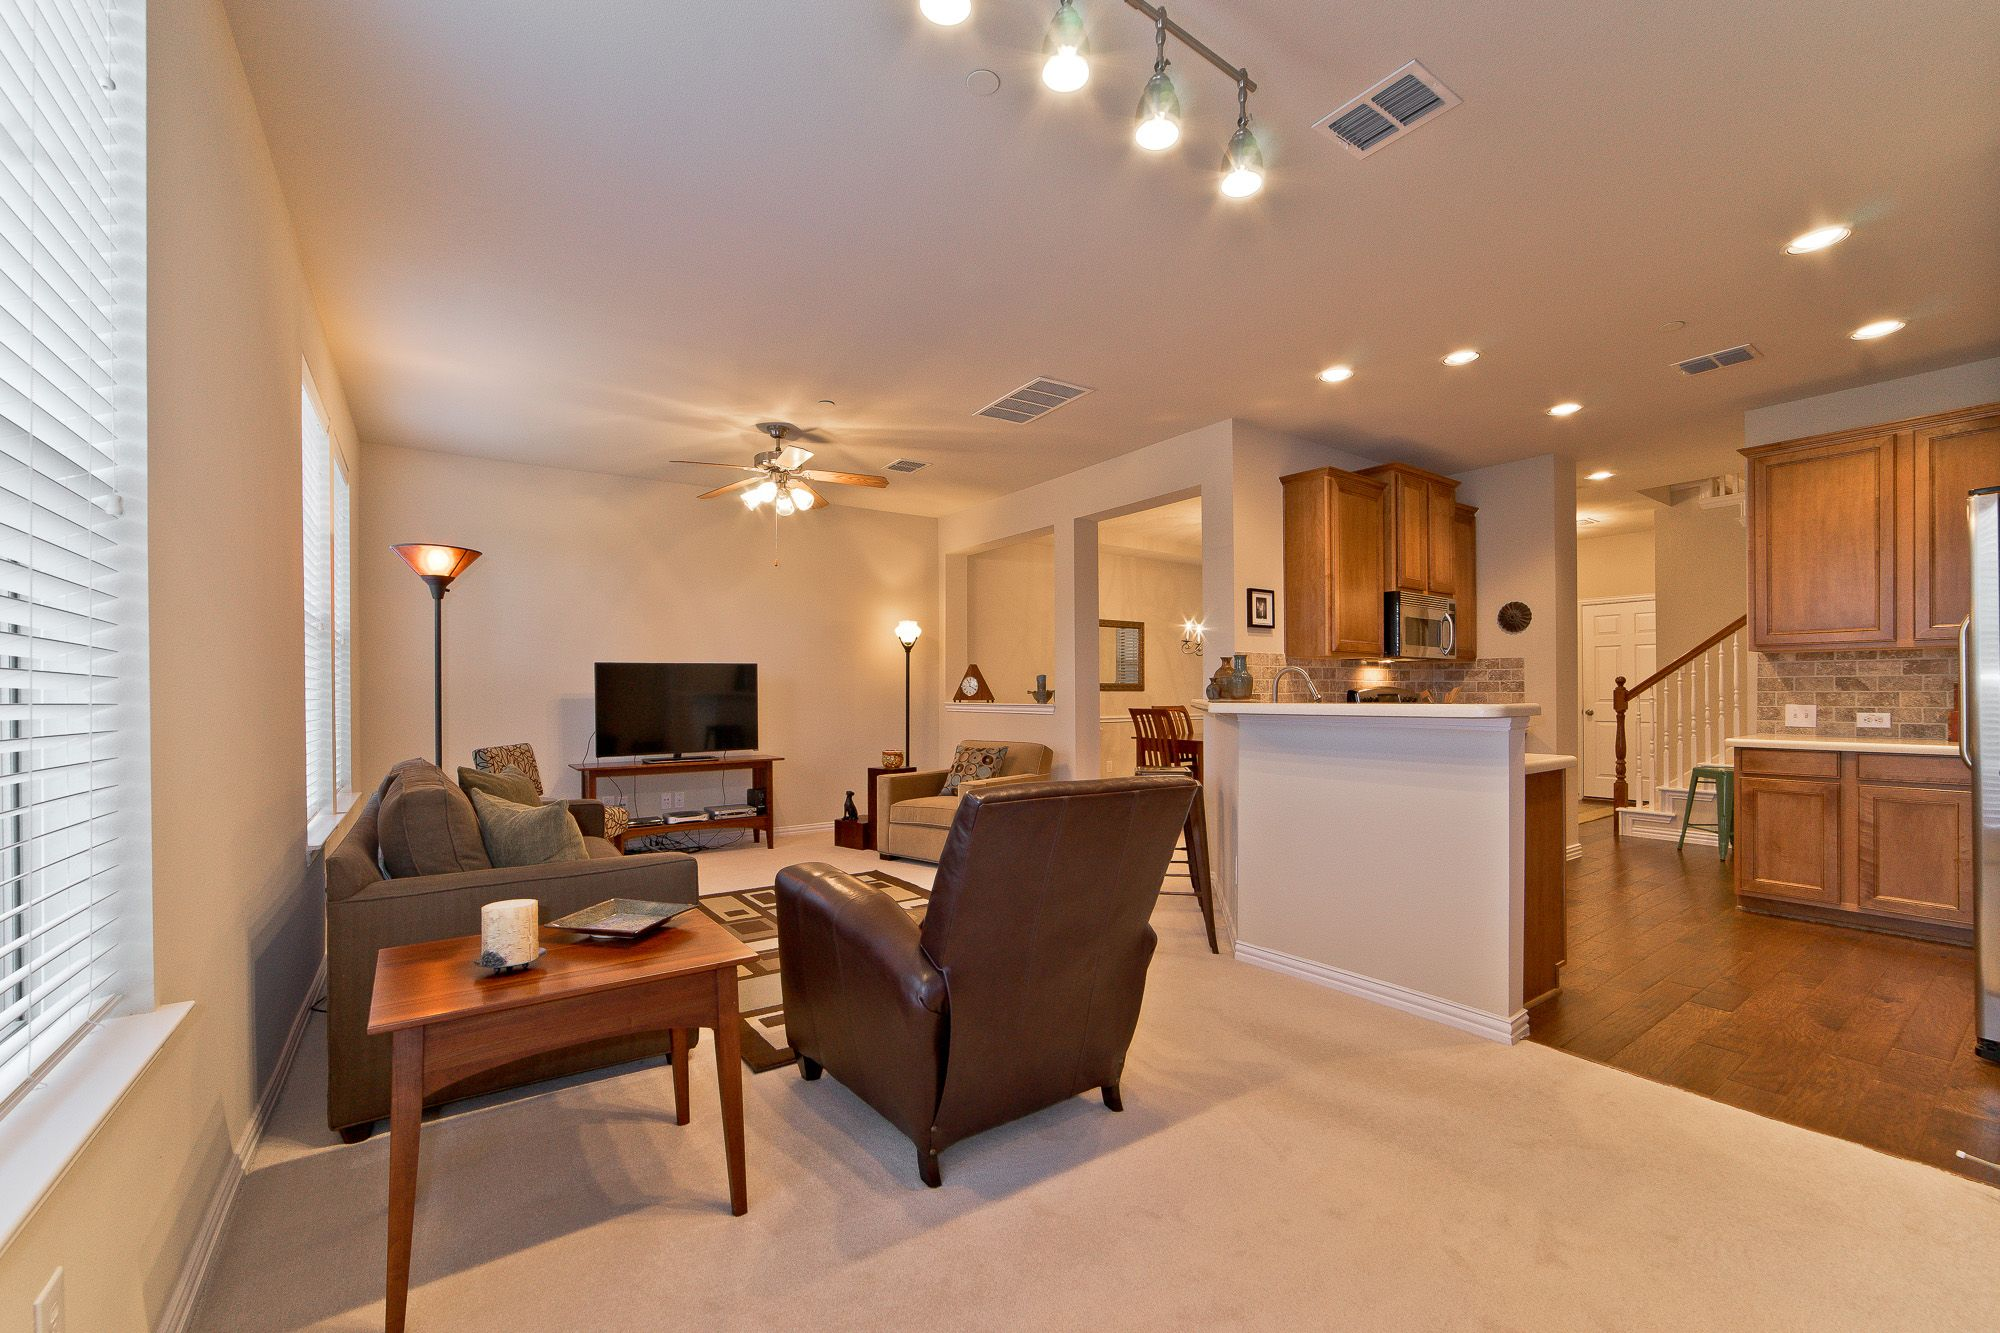 Three Bedroom Townhome In Plano ISD Townhouse, Bedroom